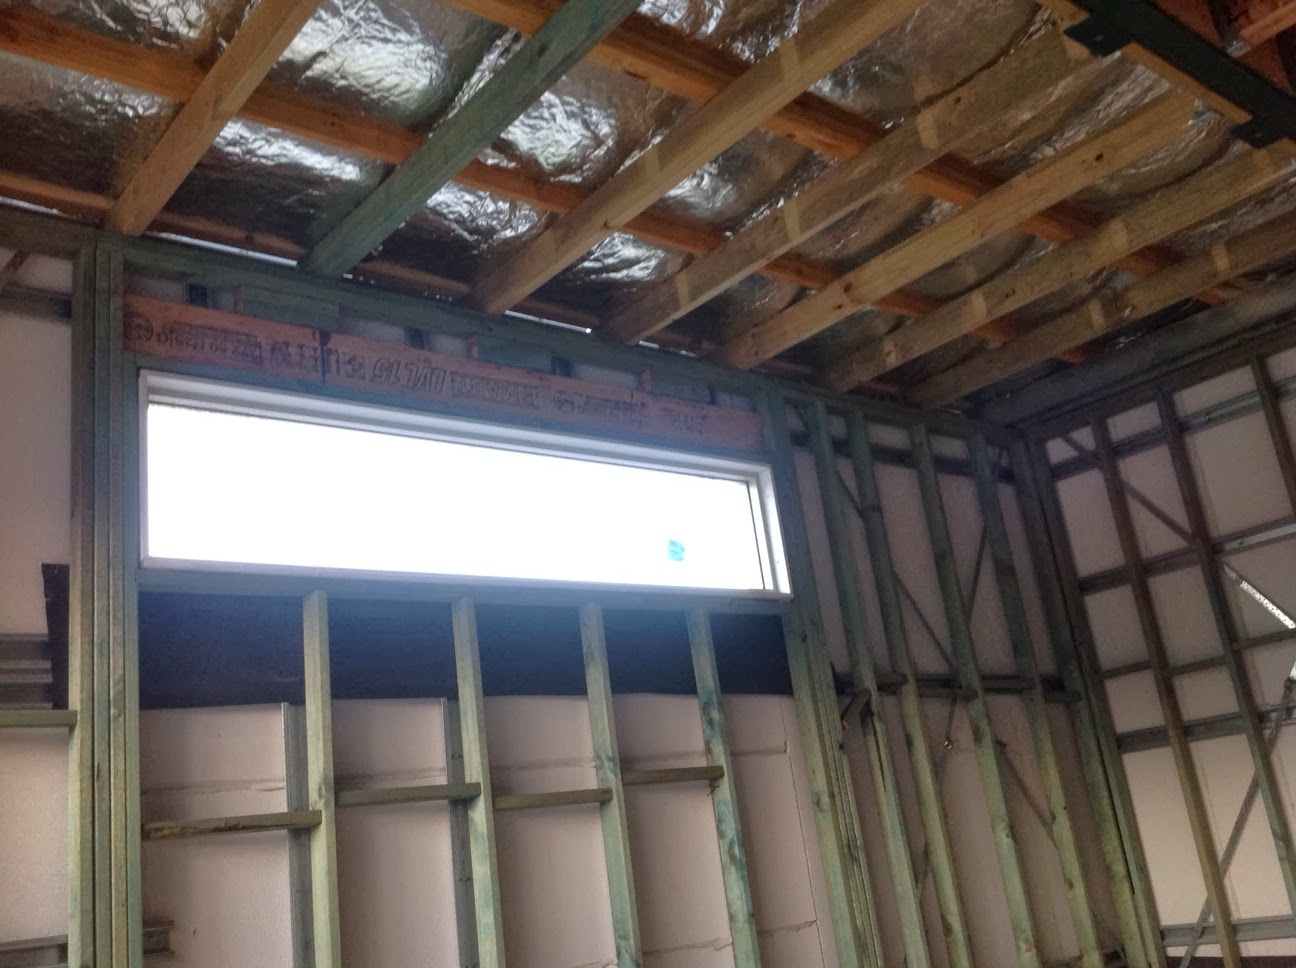 ... Flat Tray Deck Roof At 2 Degree Pitch Over Part Of Garage (see Photos  Of Inside And Outside Of Garage), Front Entry Door, And (5) And Some  Clearing Of ...